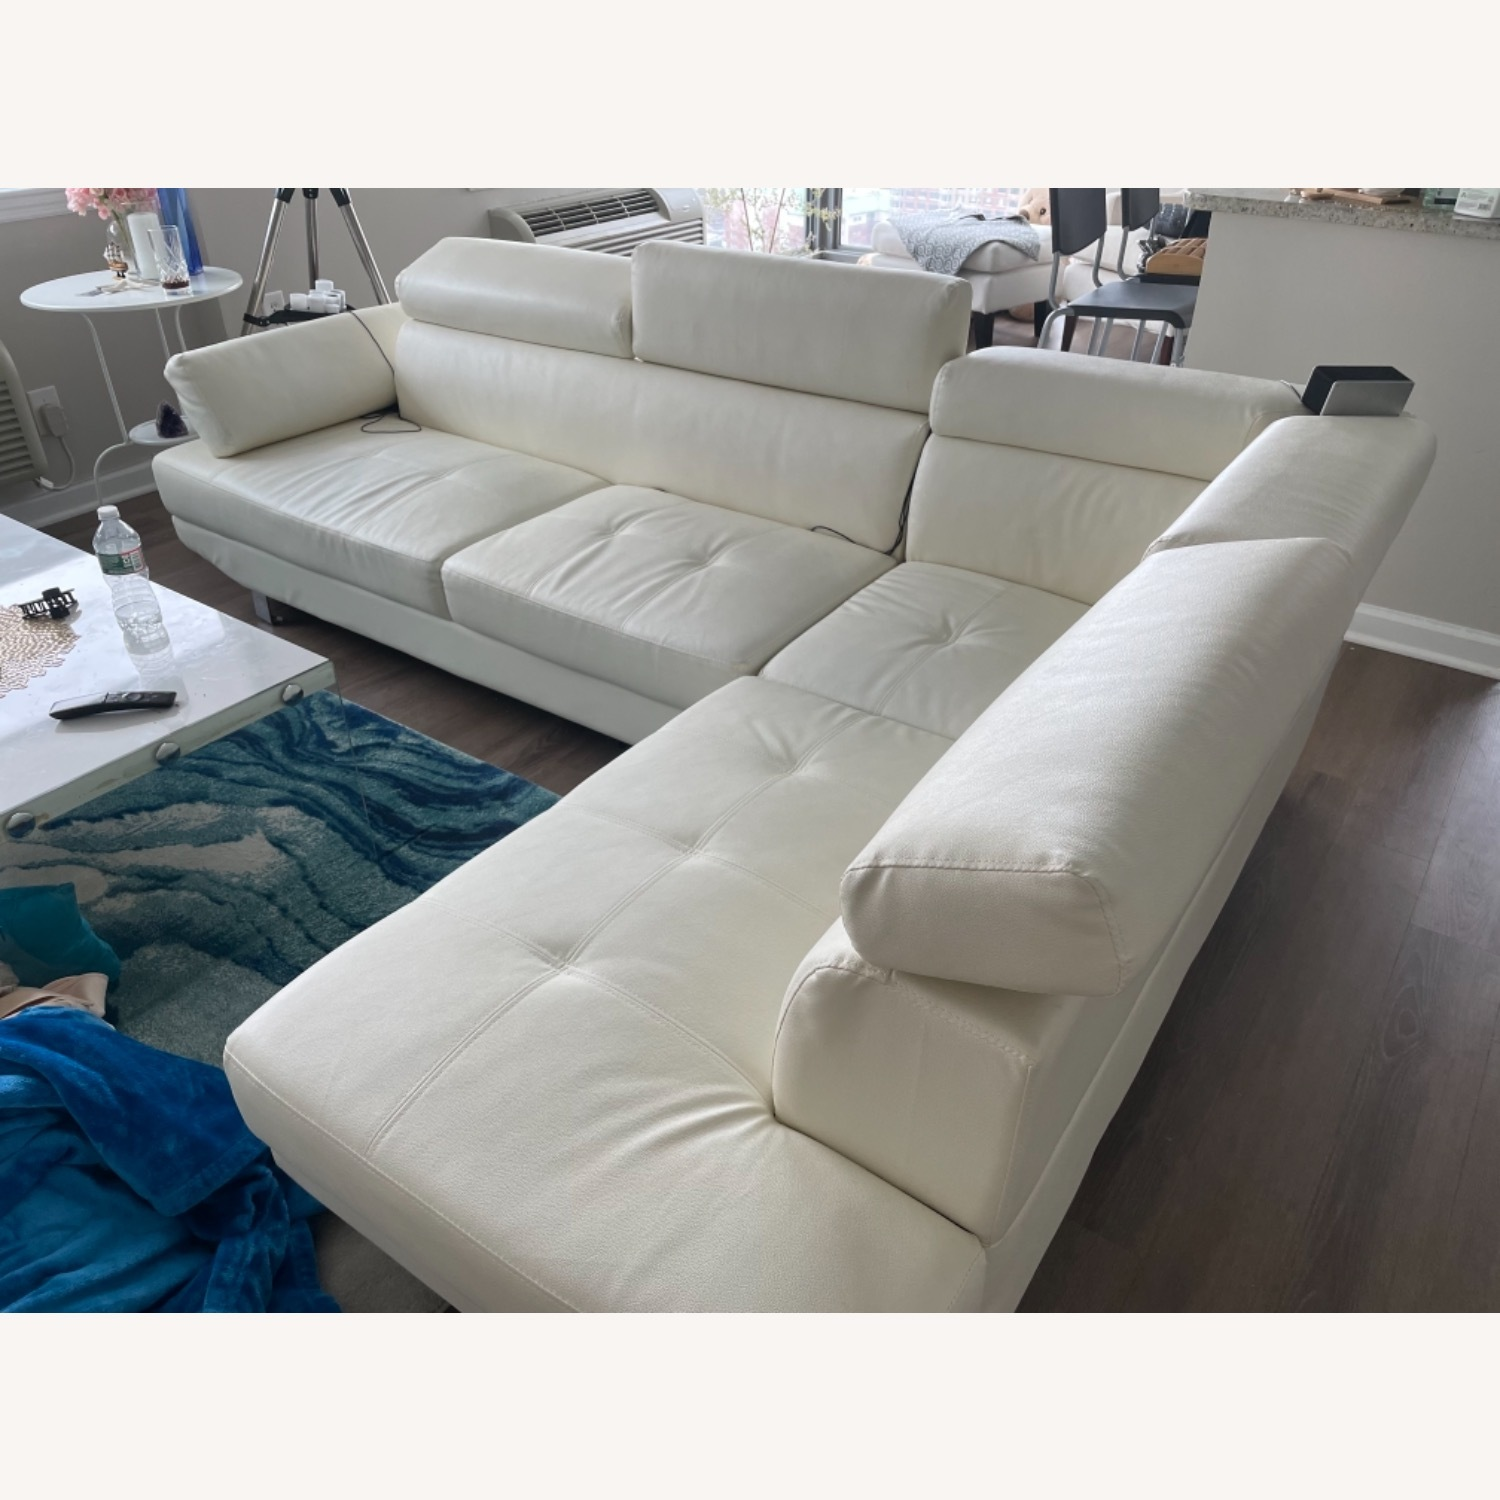 Wayfair White Sectional Sofa - image-1